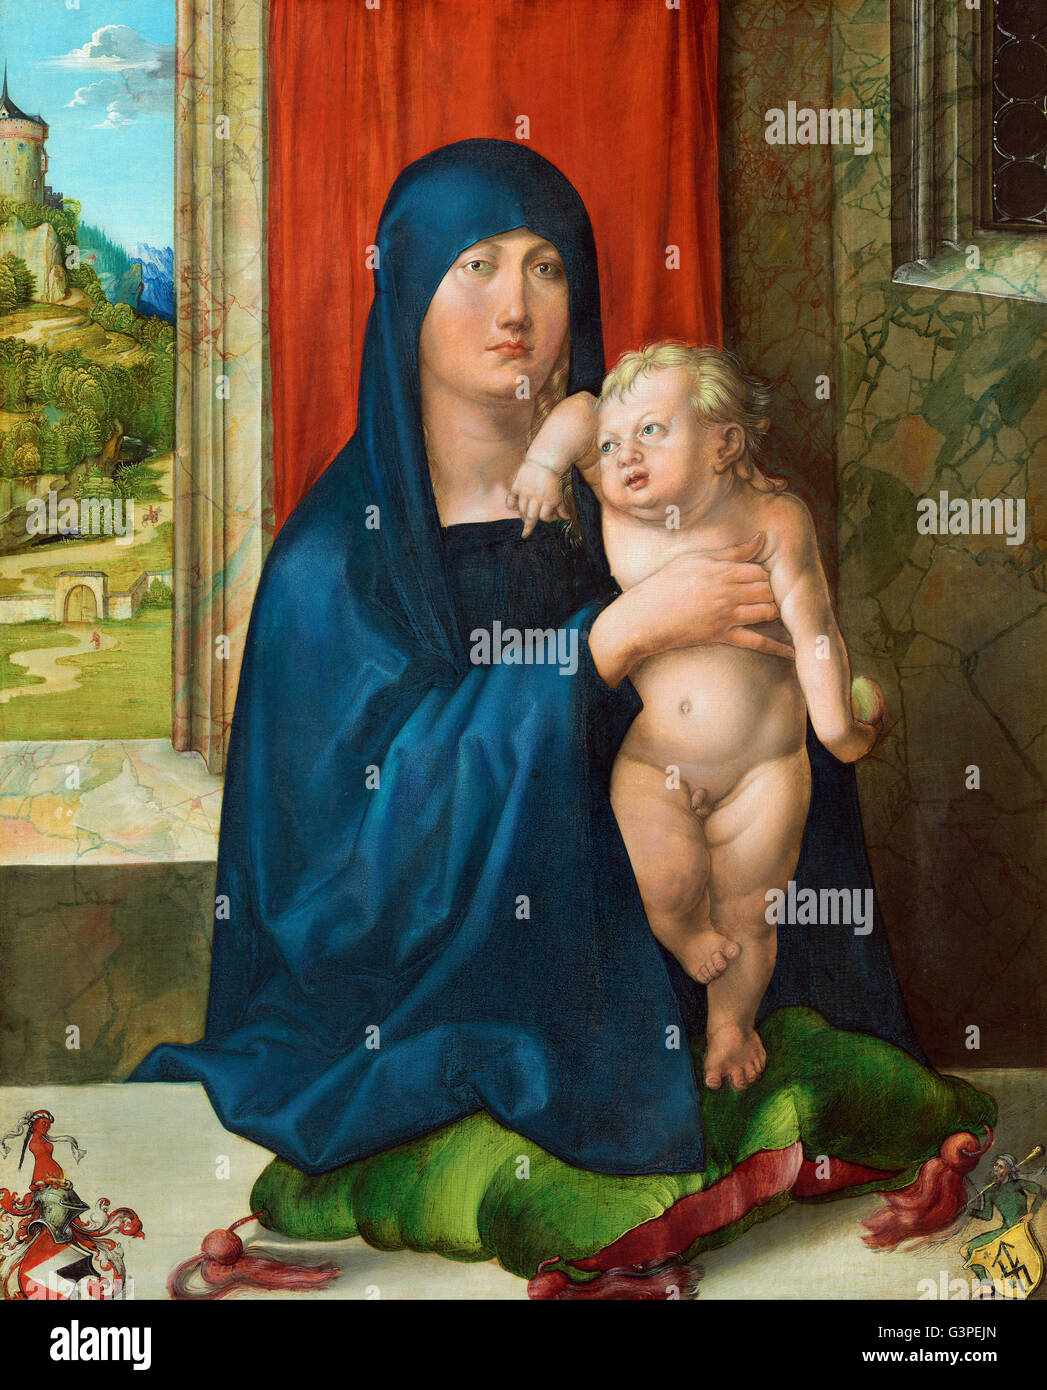 Albrecht Durer - Madonna and Child (obverse) - National Gallery of Art, Washington DC - Stock Image